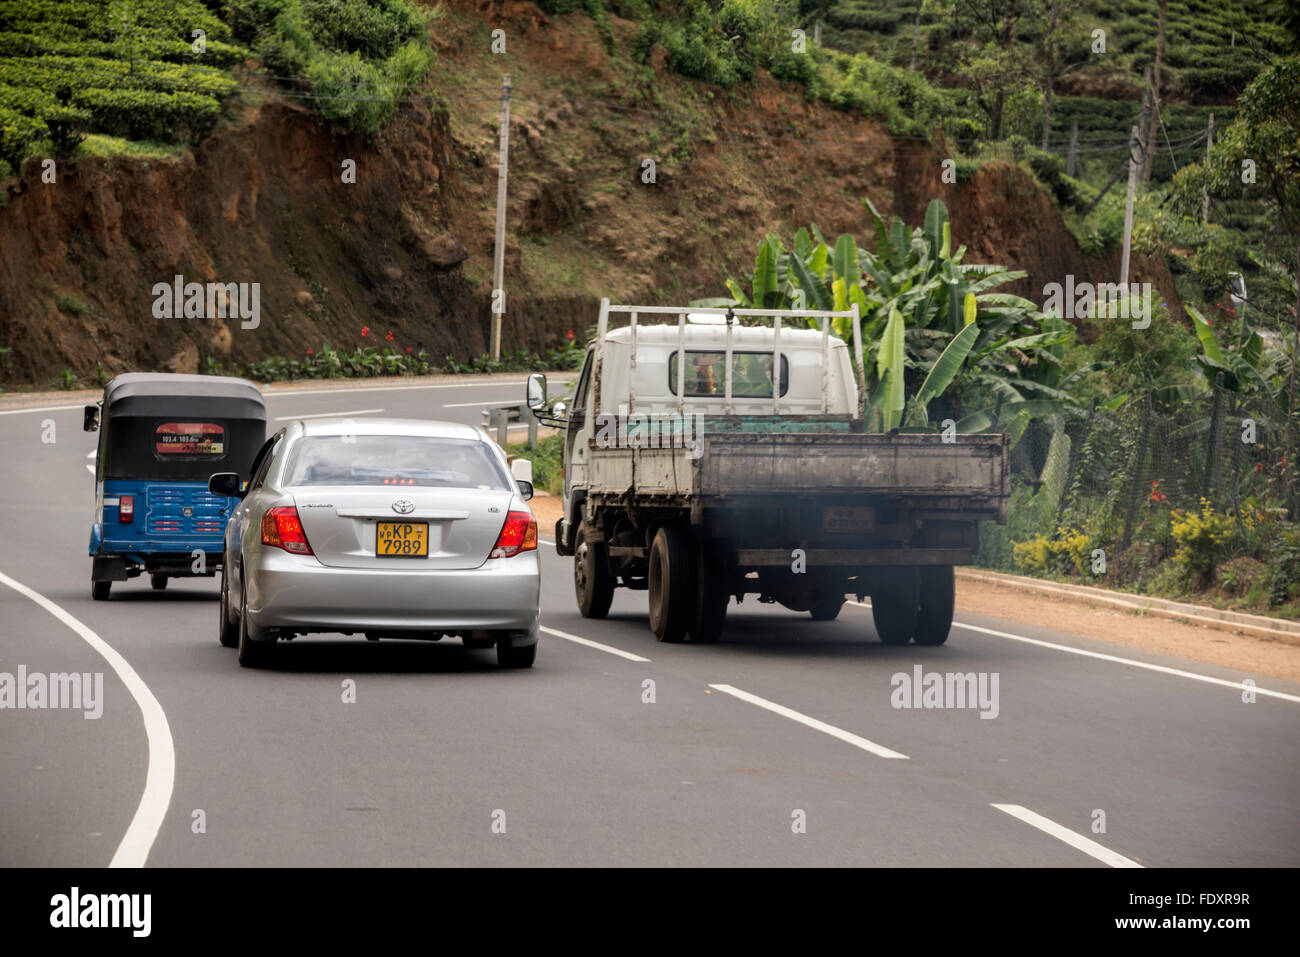 A pickup truck belching out polluted exhaust of diesel fumes as it overtakes other vehicles whilst approaching  Stock Photo